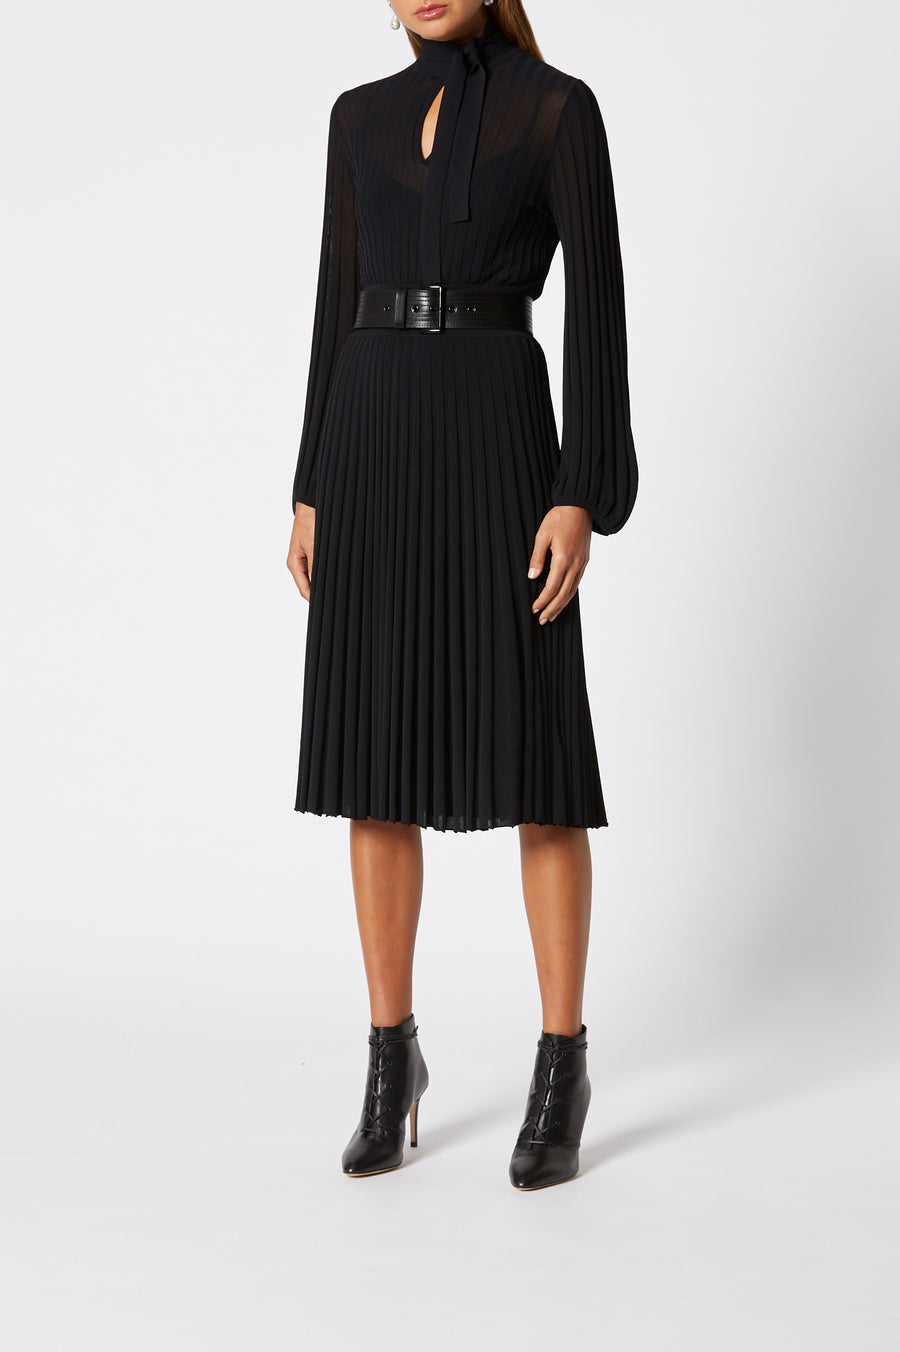 Pleated Rib Tie Neck Dress, knitted in an Italian Viscose/ Polyester blend, natural pleat, tie neck, peplum cuffs, cinches in at the waist, Color Black